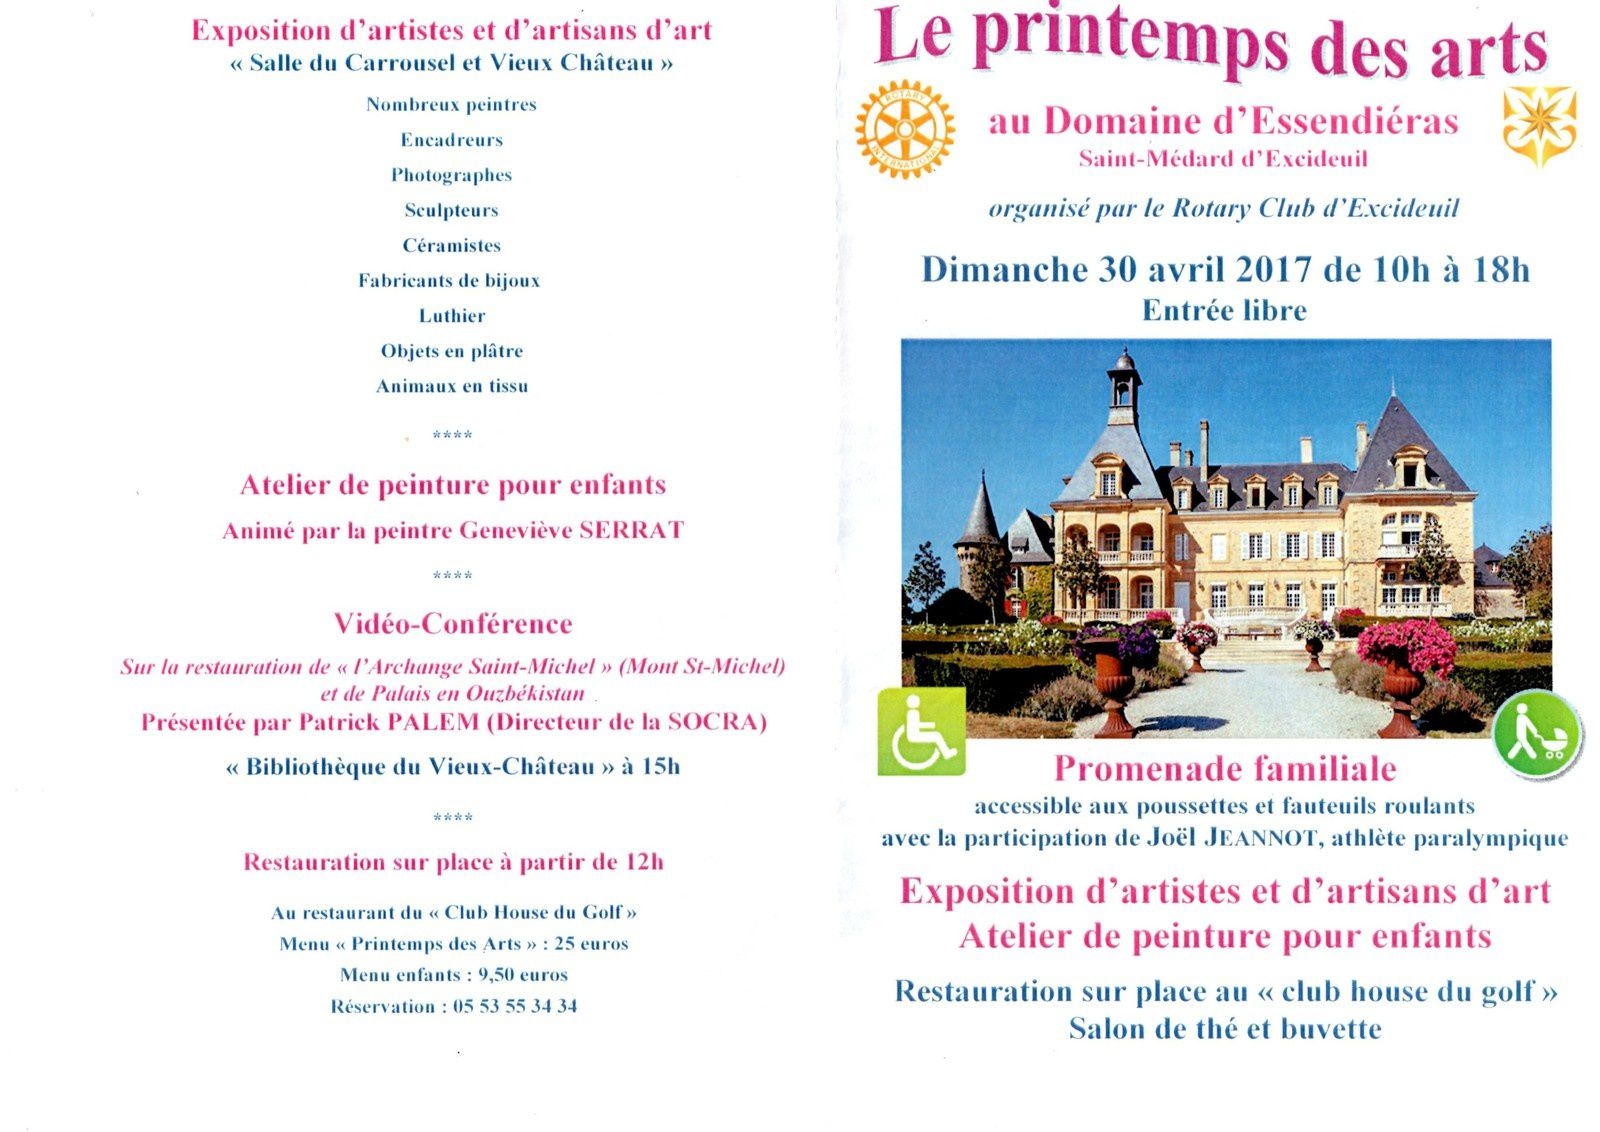 LE PRINTEMPS DES ARTS LE 30 AVRIL 2017 à ESSENDIERAS (24160 SAINT-MEDARD D'EXCIDEUIL)